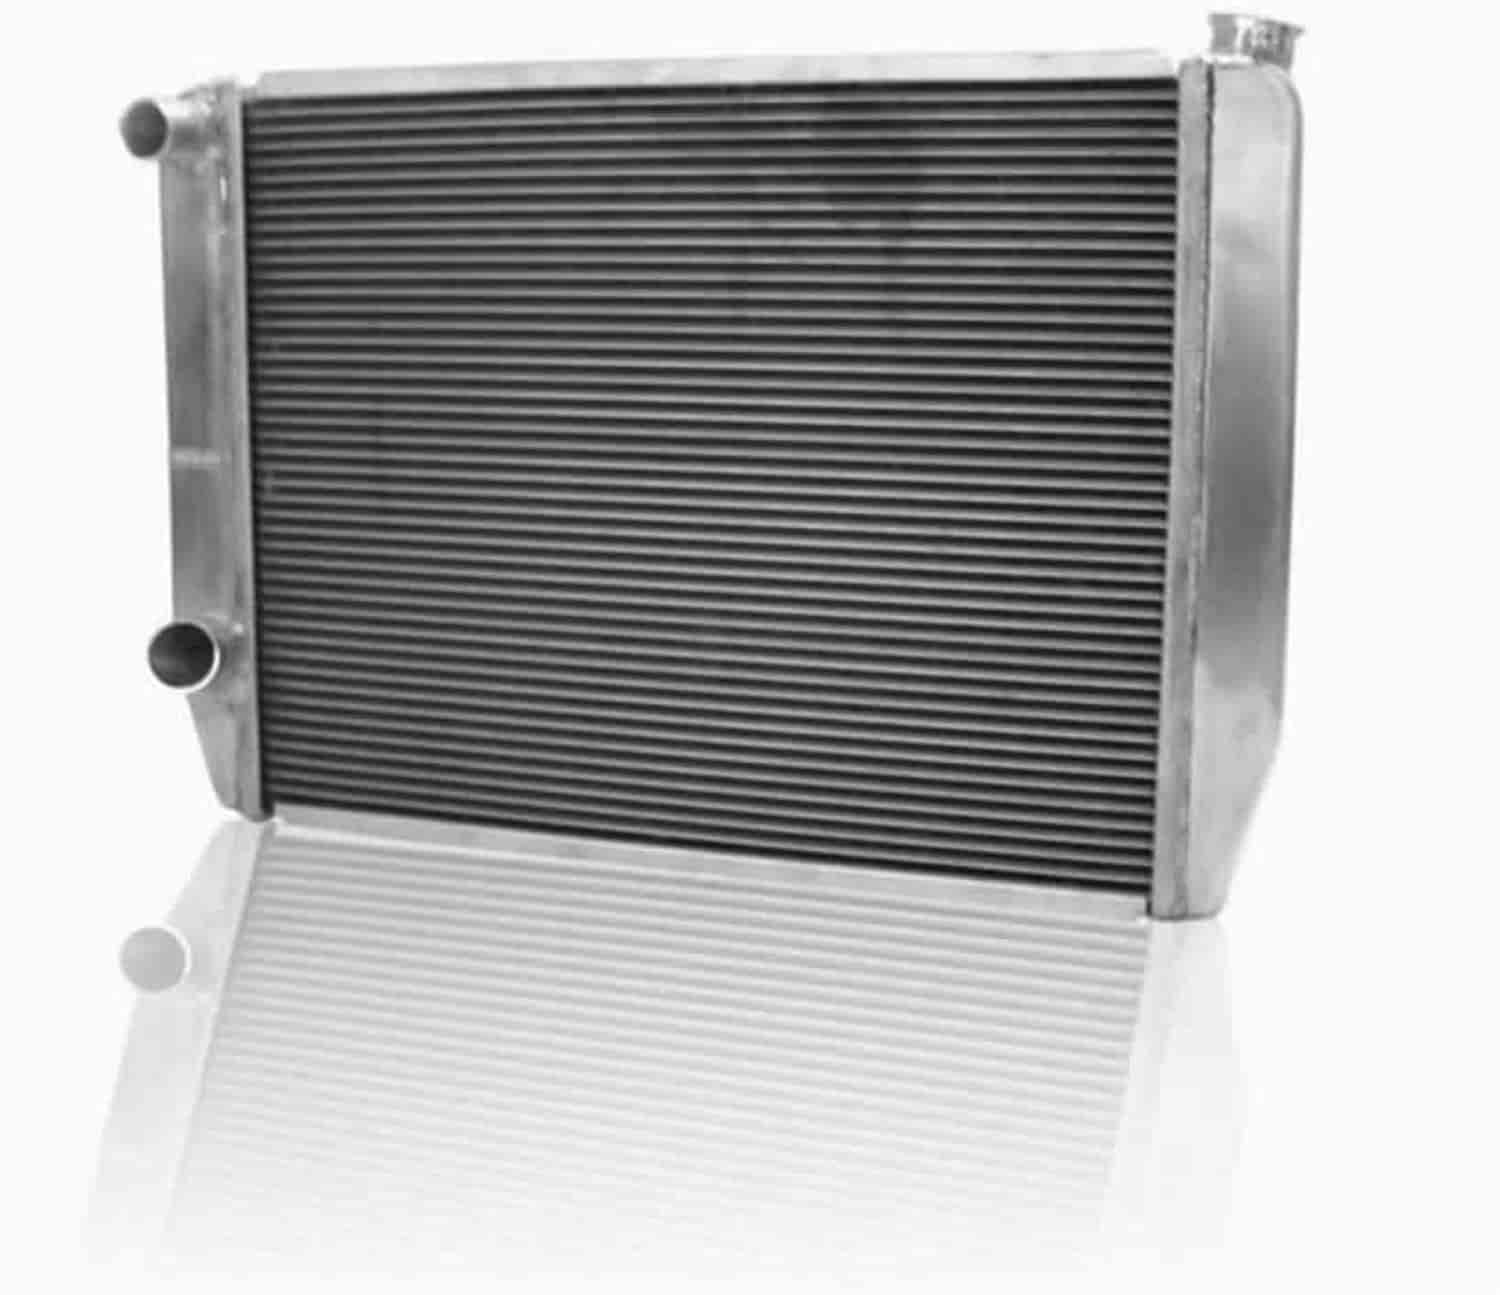 Griffin Radiators 1 29242 X Classiccool Universal Fit Radiator Dual Fuel Filters